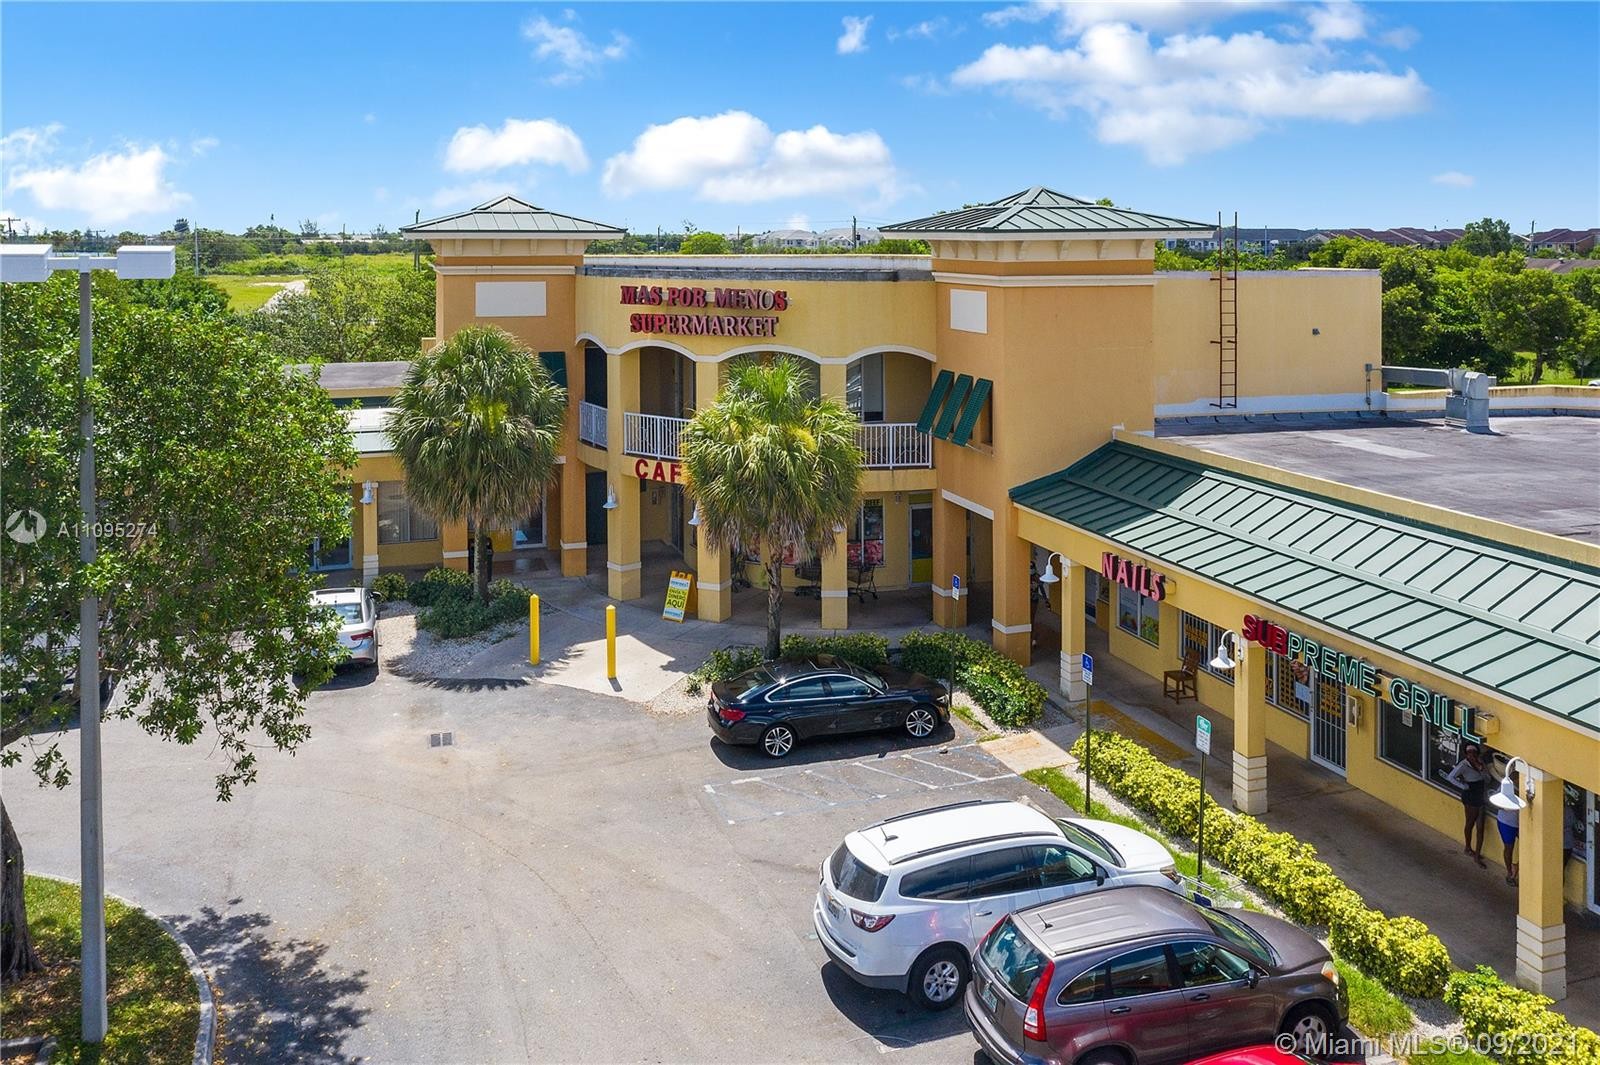 PROPERTY OVERVIEW • Total Building Size: 30,316 SF • Zoning: BU-1A • Parking Ratio: 4.00/1,000 SF • Newest and best maintained property in the area • Flexible lease terms available • Great visibility from US-1